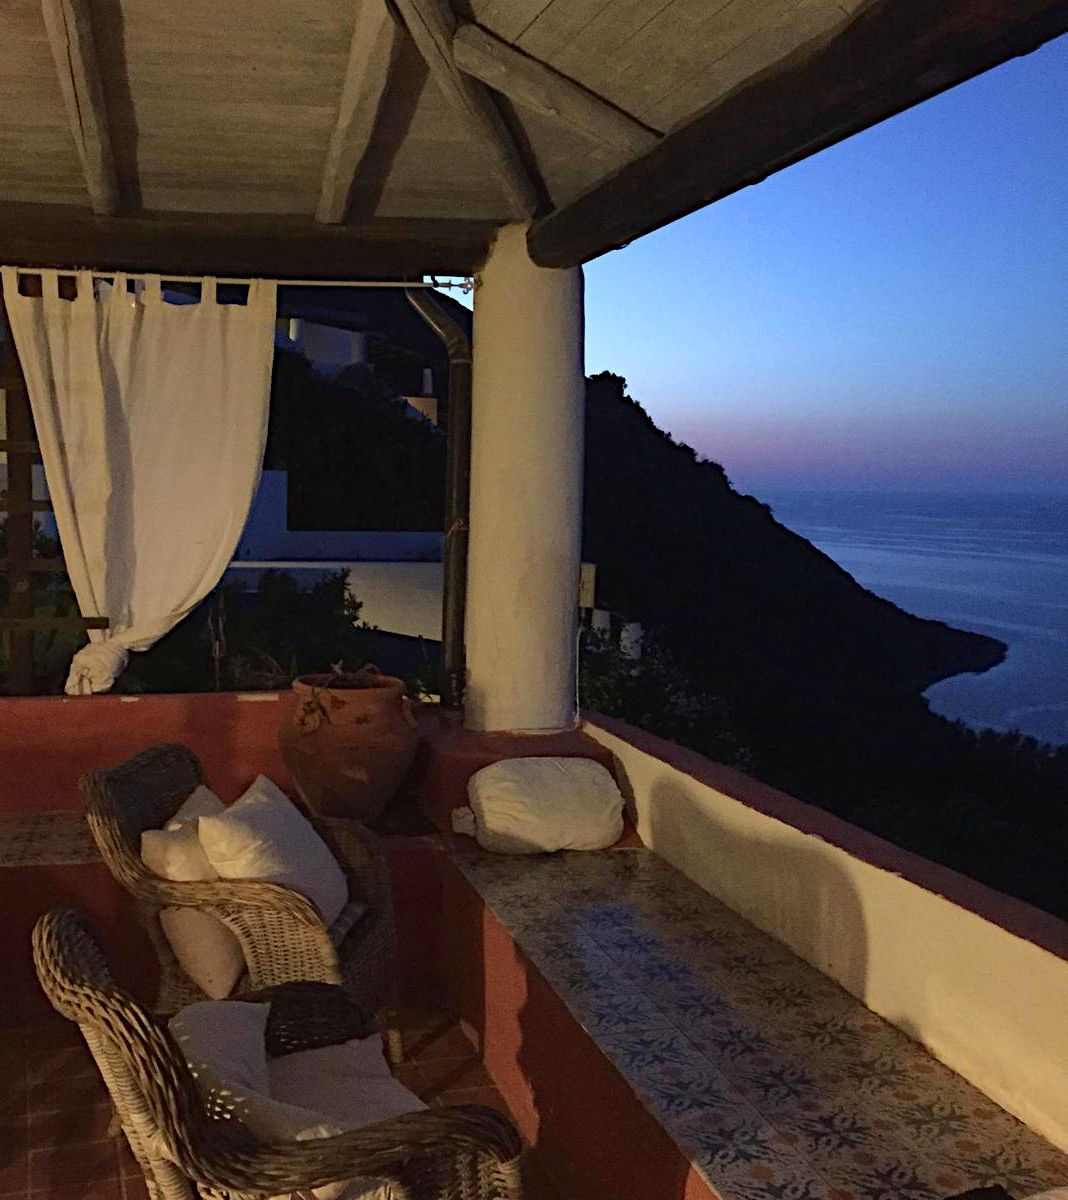 What a romantic view! #Sicily #view #Filicudi